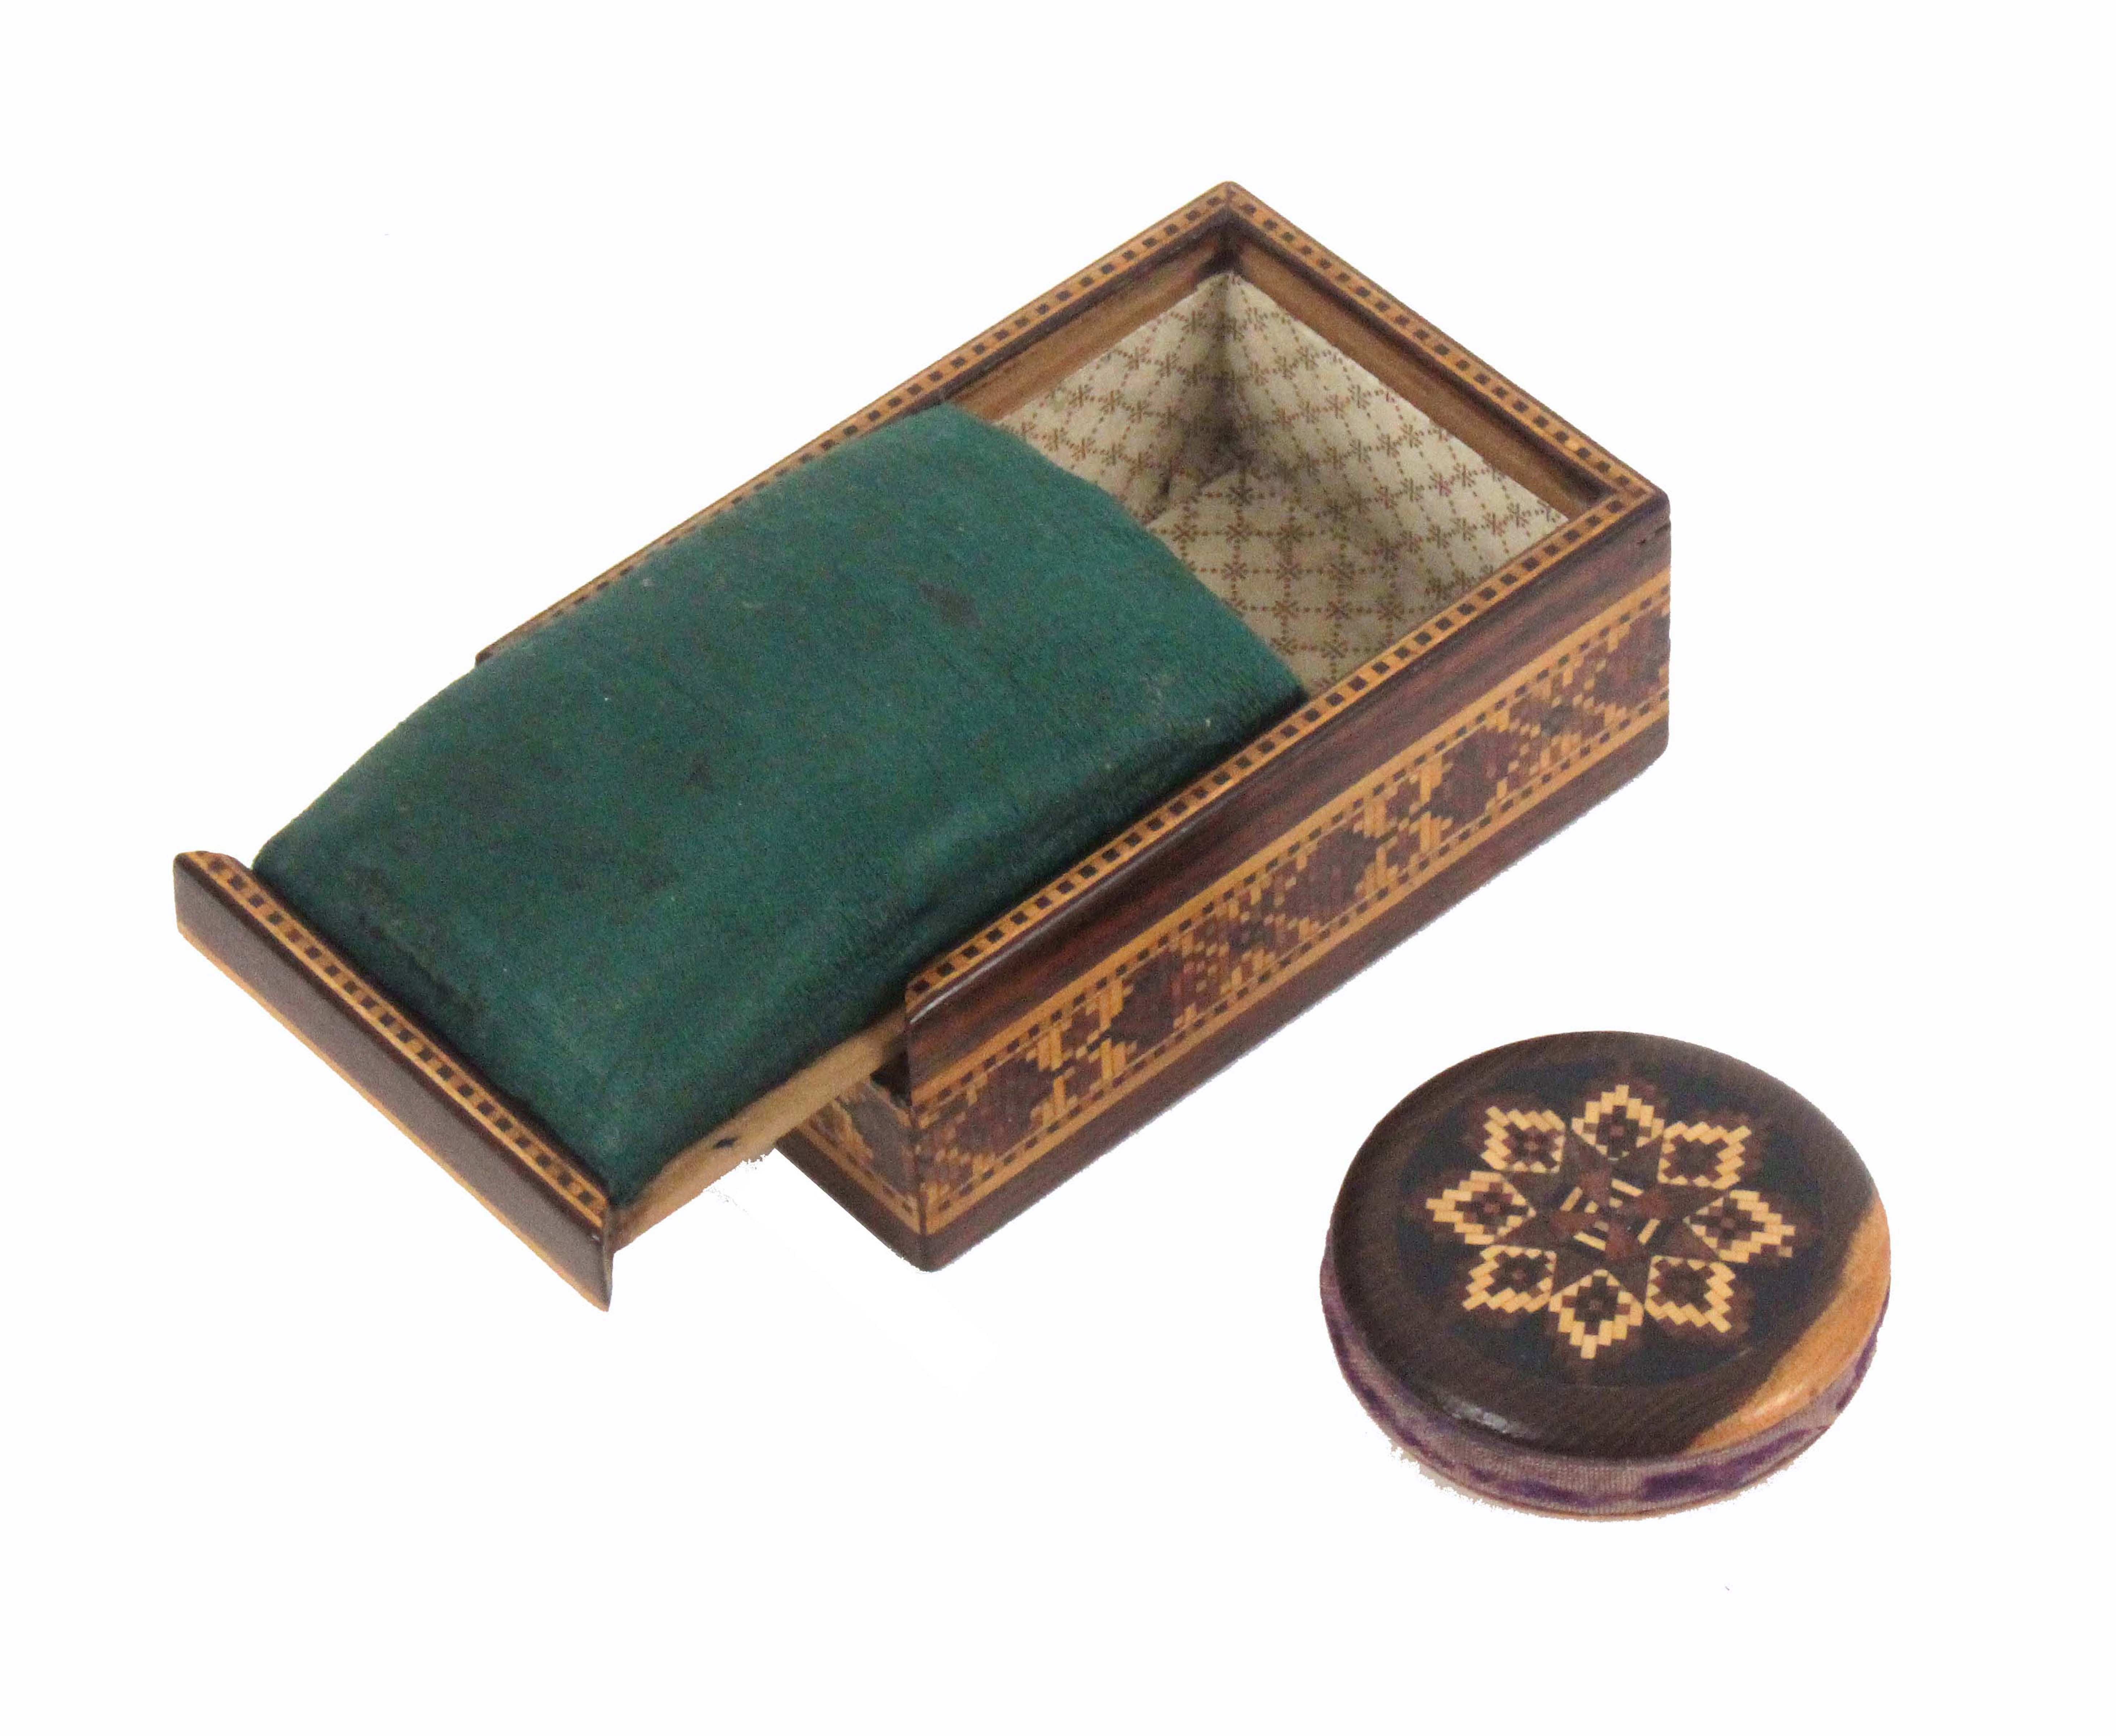 Tunbridge ware - two pieces, comprising a rosewood geometric mosaic rectangular box with sliding lid - Image 2 of 2